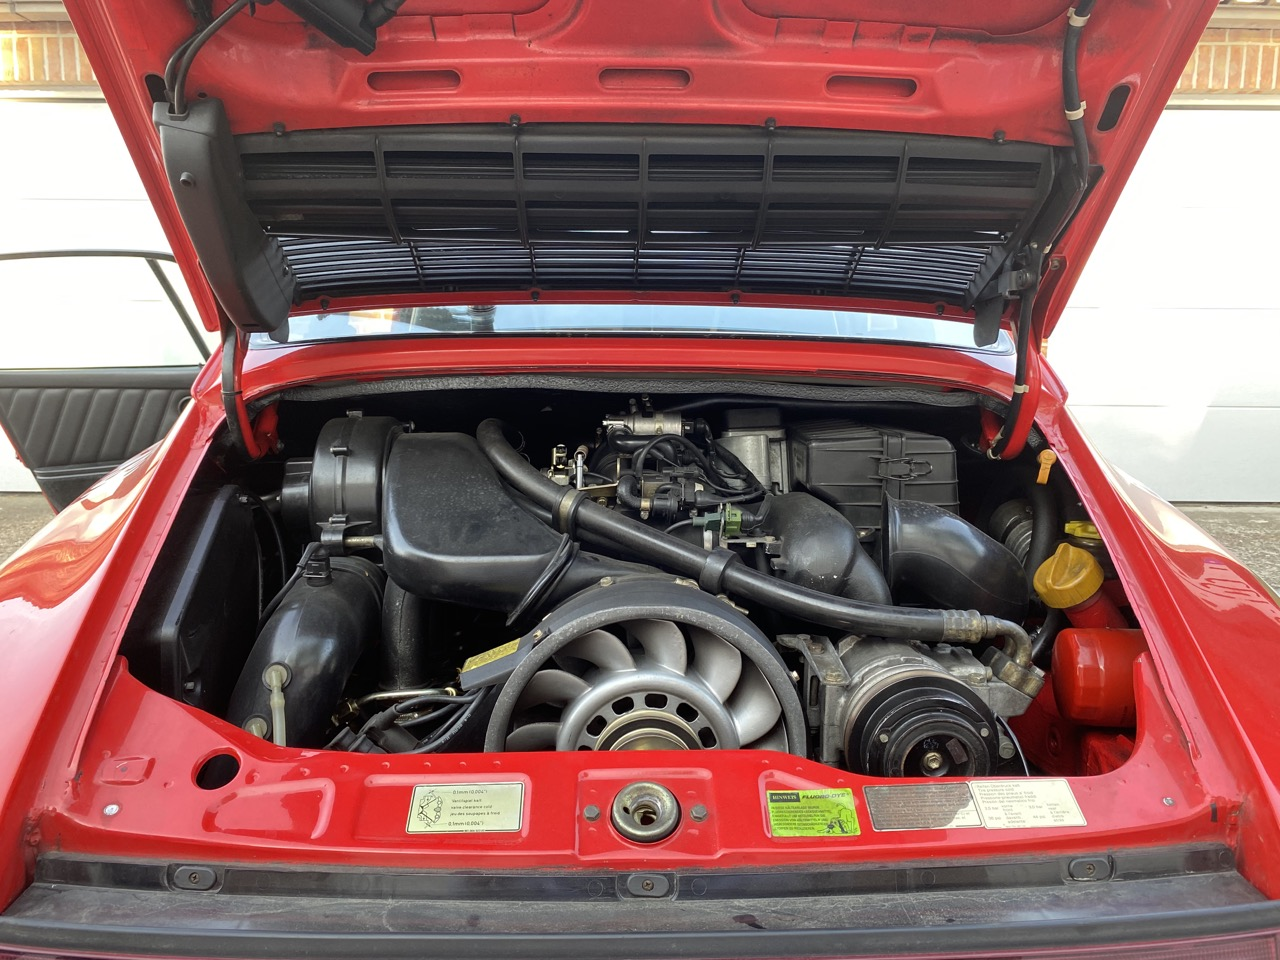 youngtimer.one - Porsche 964 Carrera 4 - Guards Red - 1989 - 16 of 20